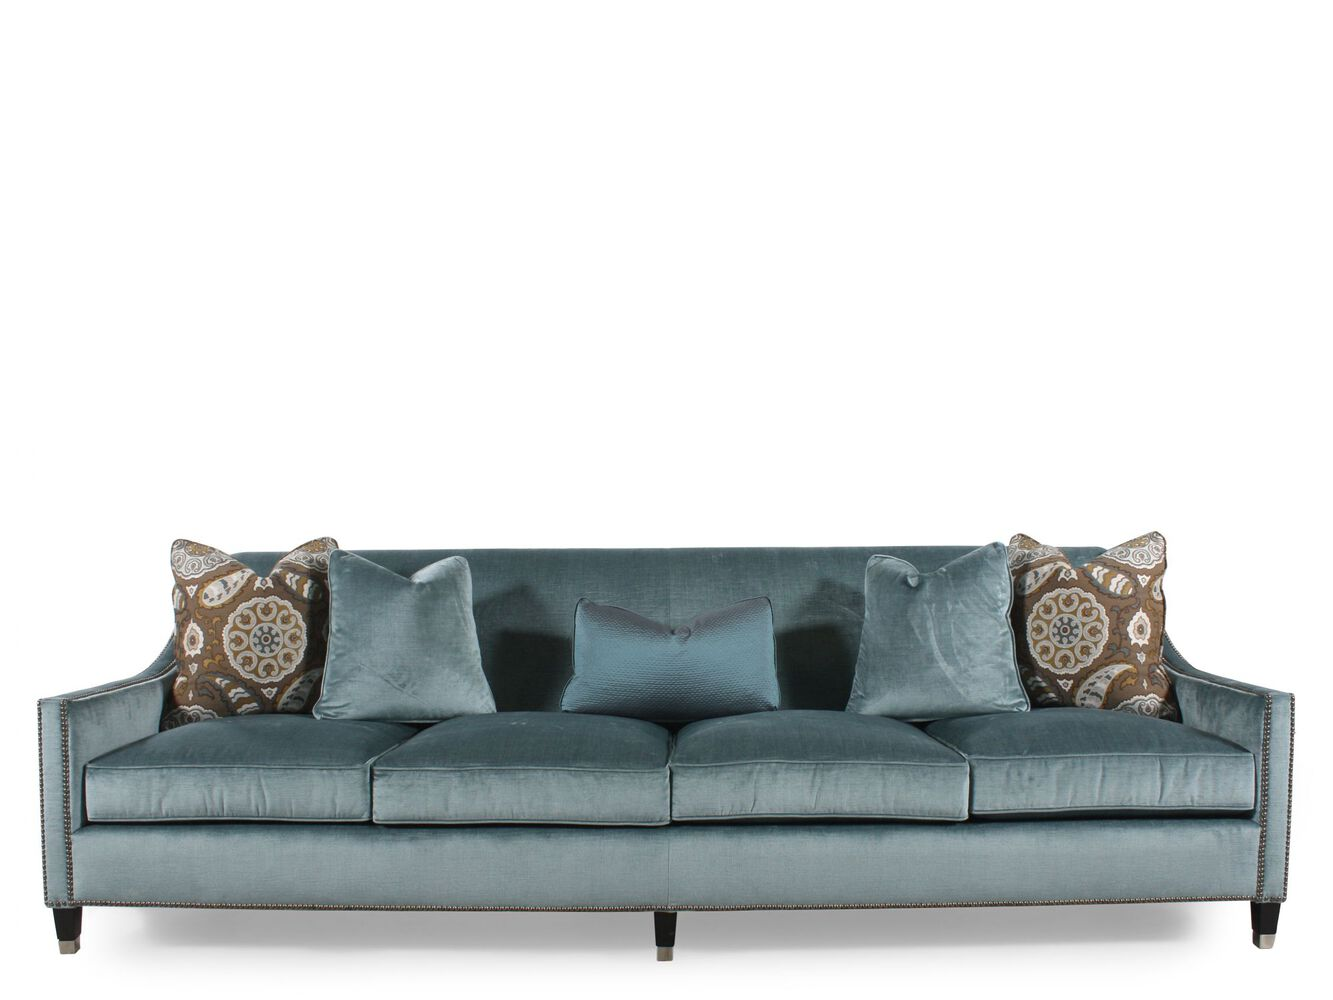 Bernhardt interiors palisades sofa mathis brothers furniture for Bernhardt furniture